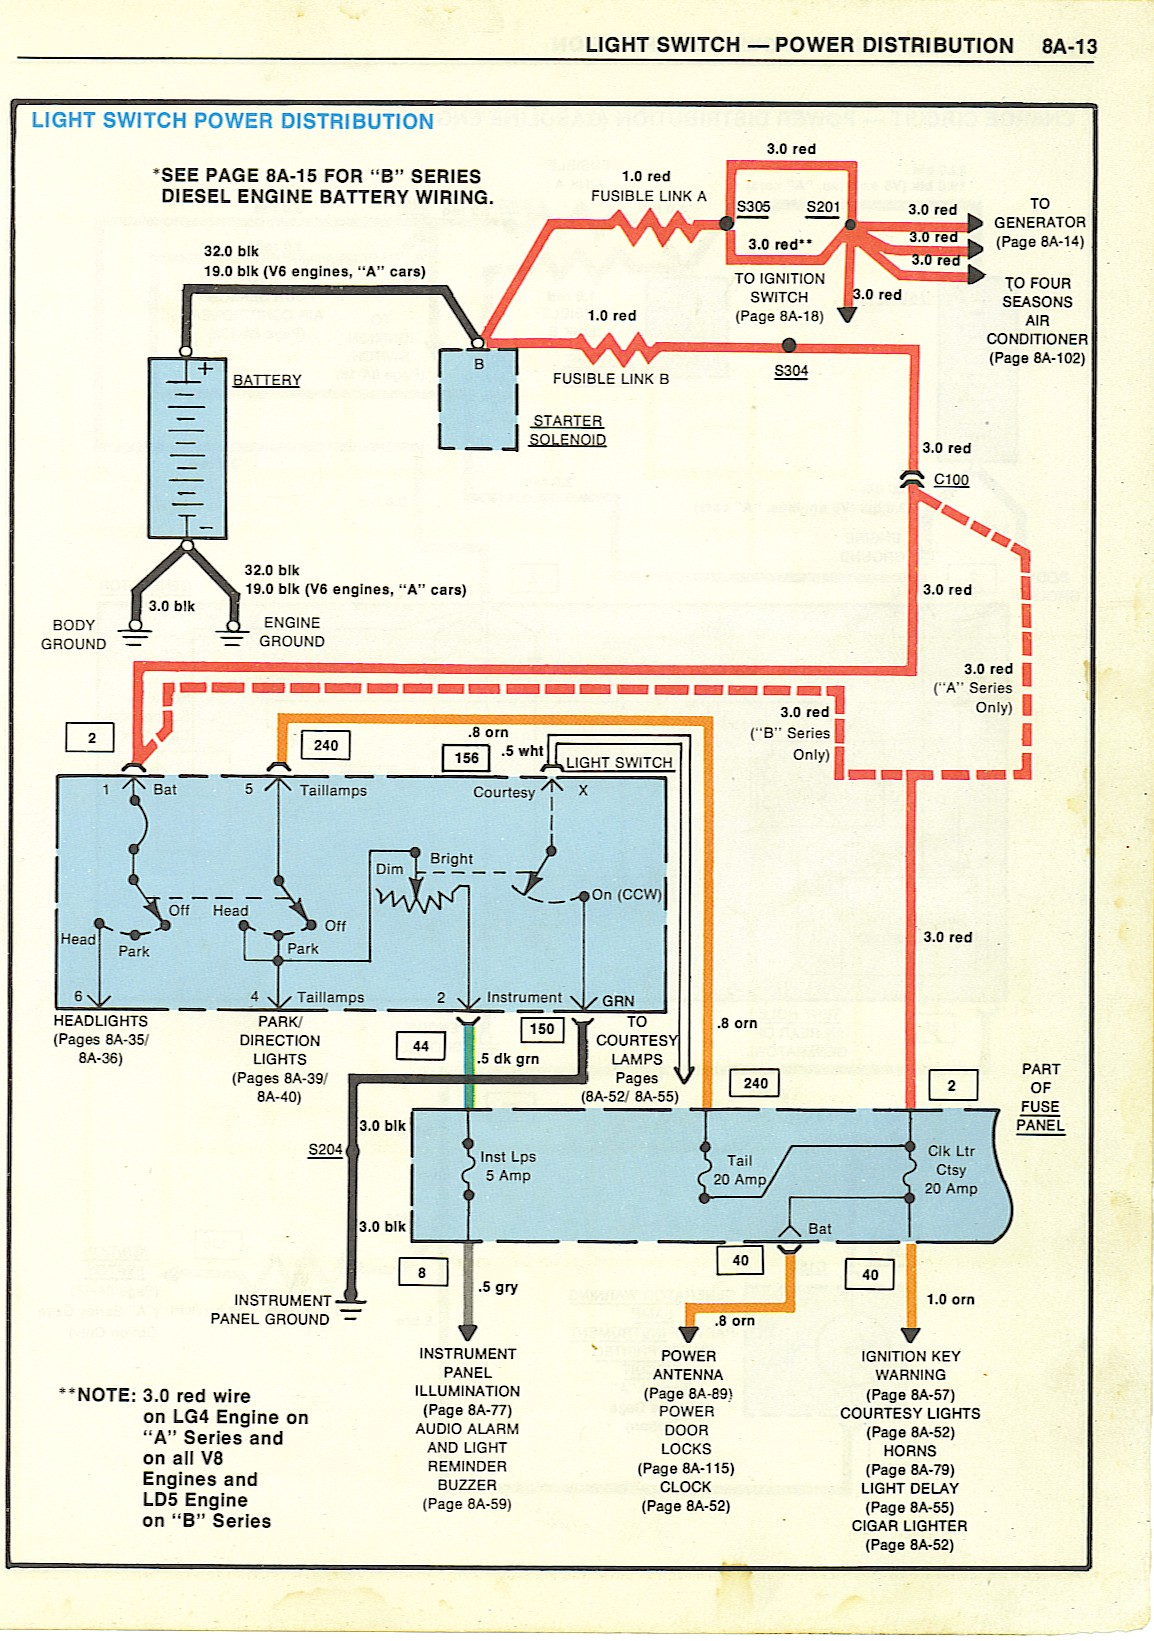 Lighted Toggle Switch Wiring Diagram - image details